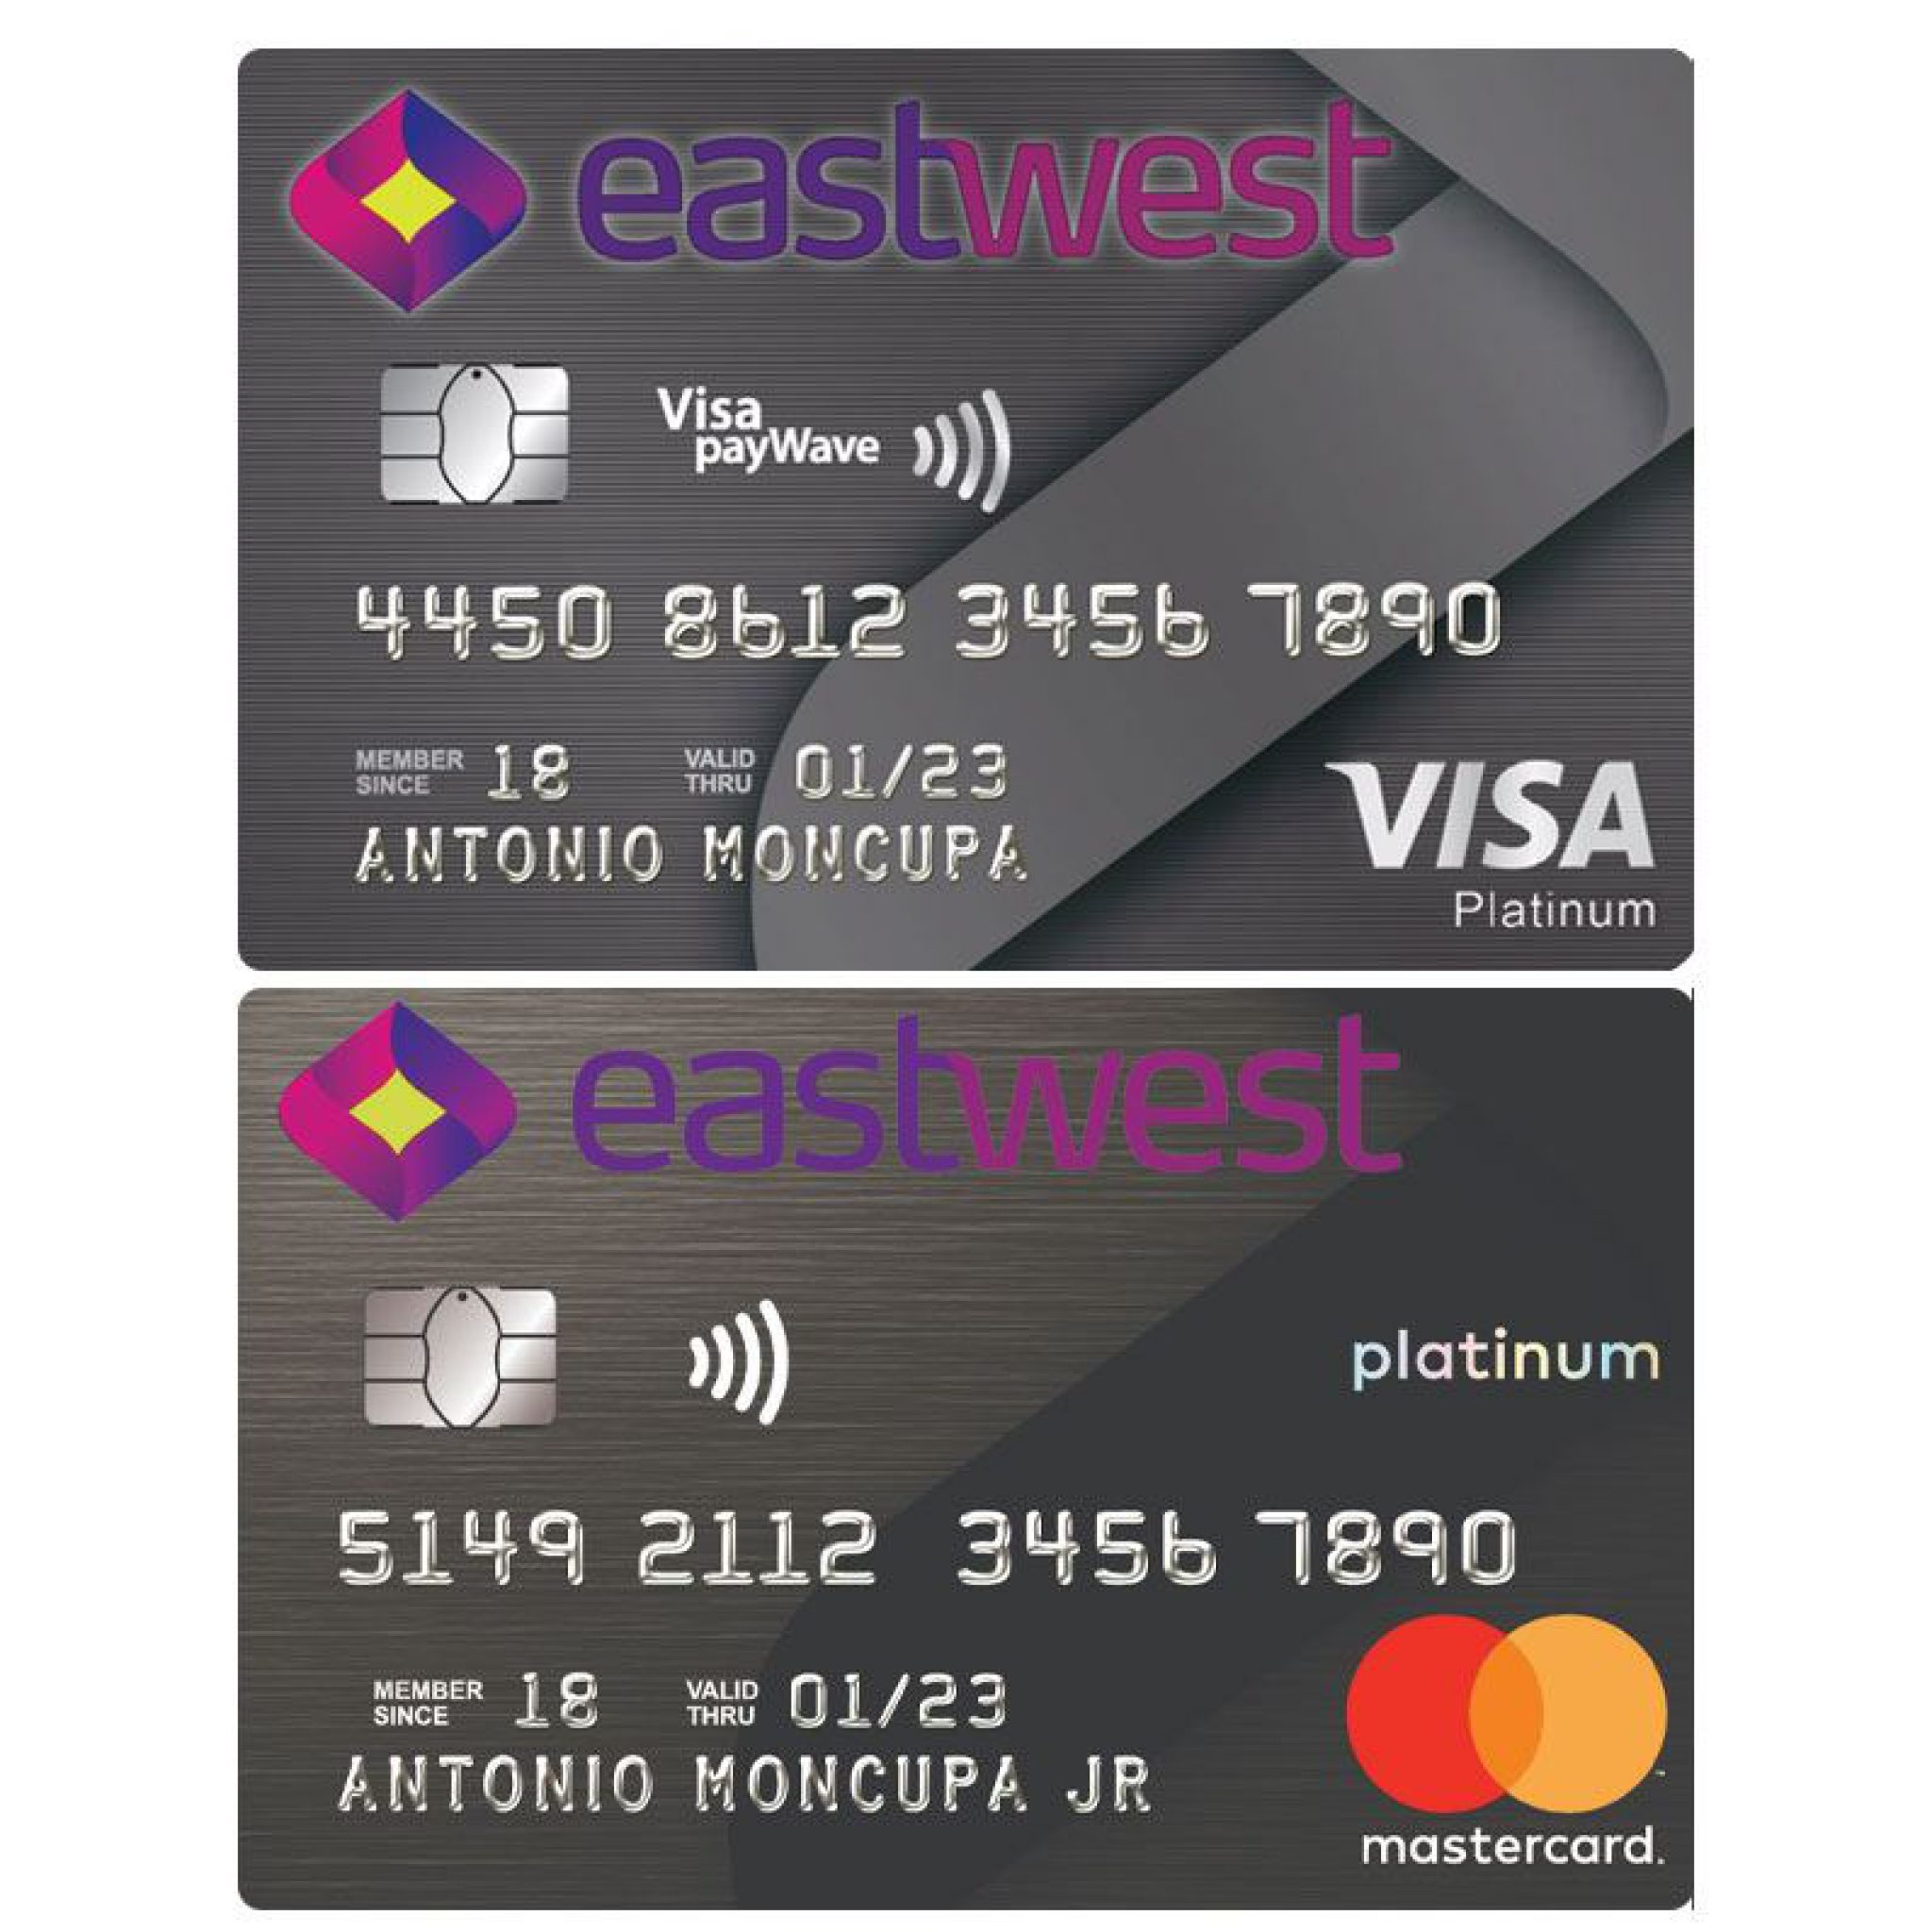 Eastwest Platinum Visa and Mastercard